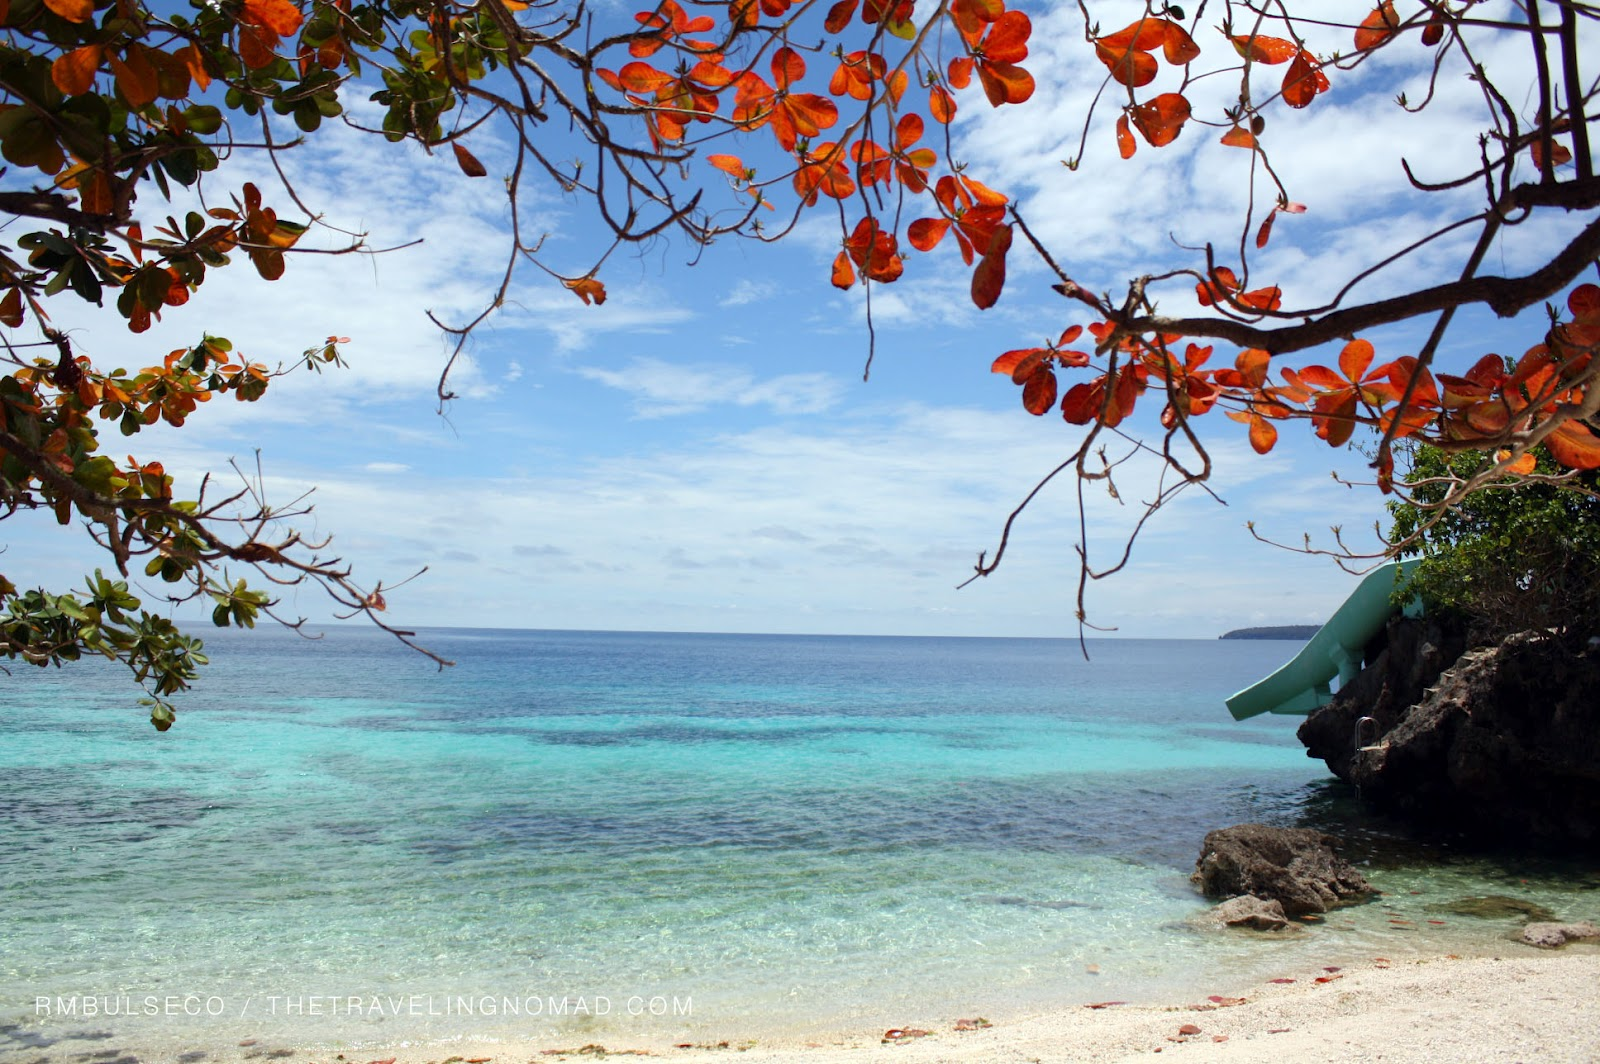 30 Best Beaches In The Philippines According To Travel Bloggers Part 2 Philippine Beach Guide